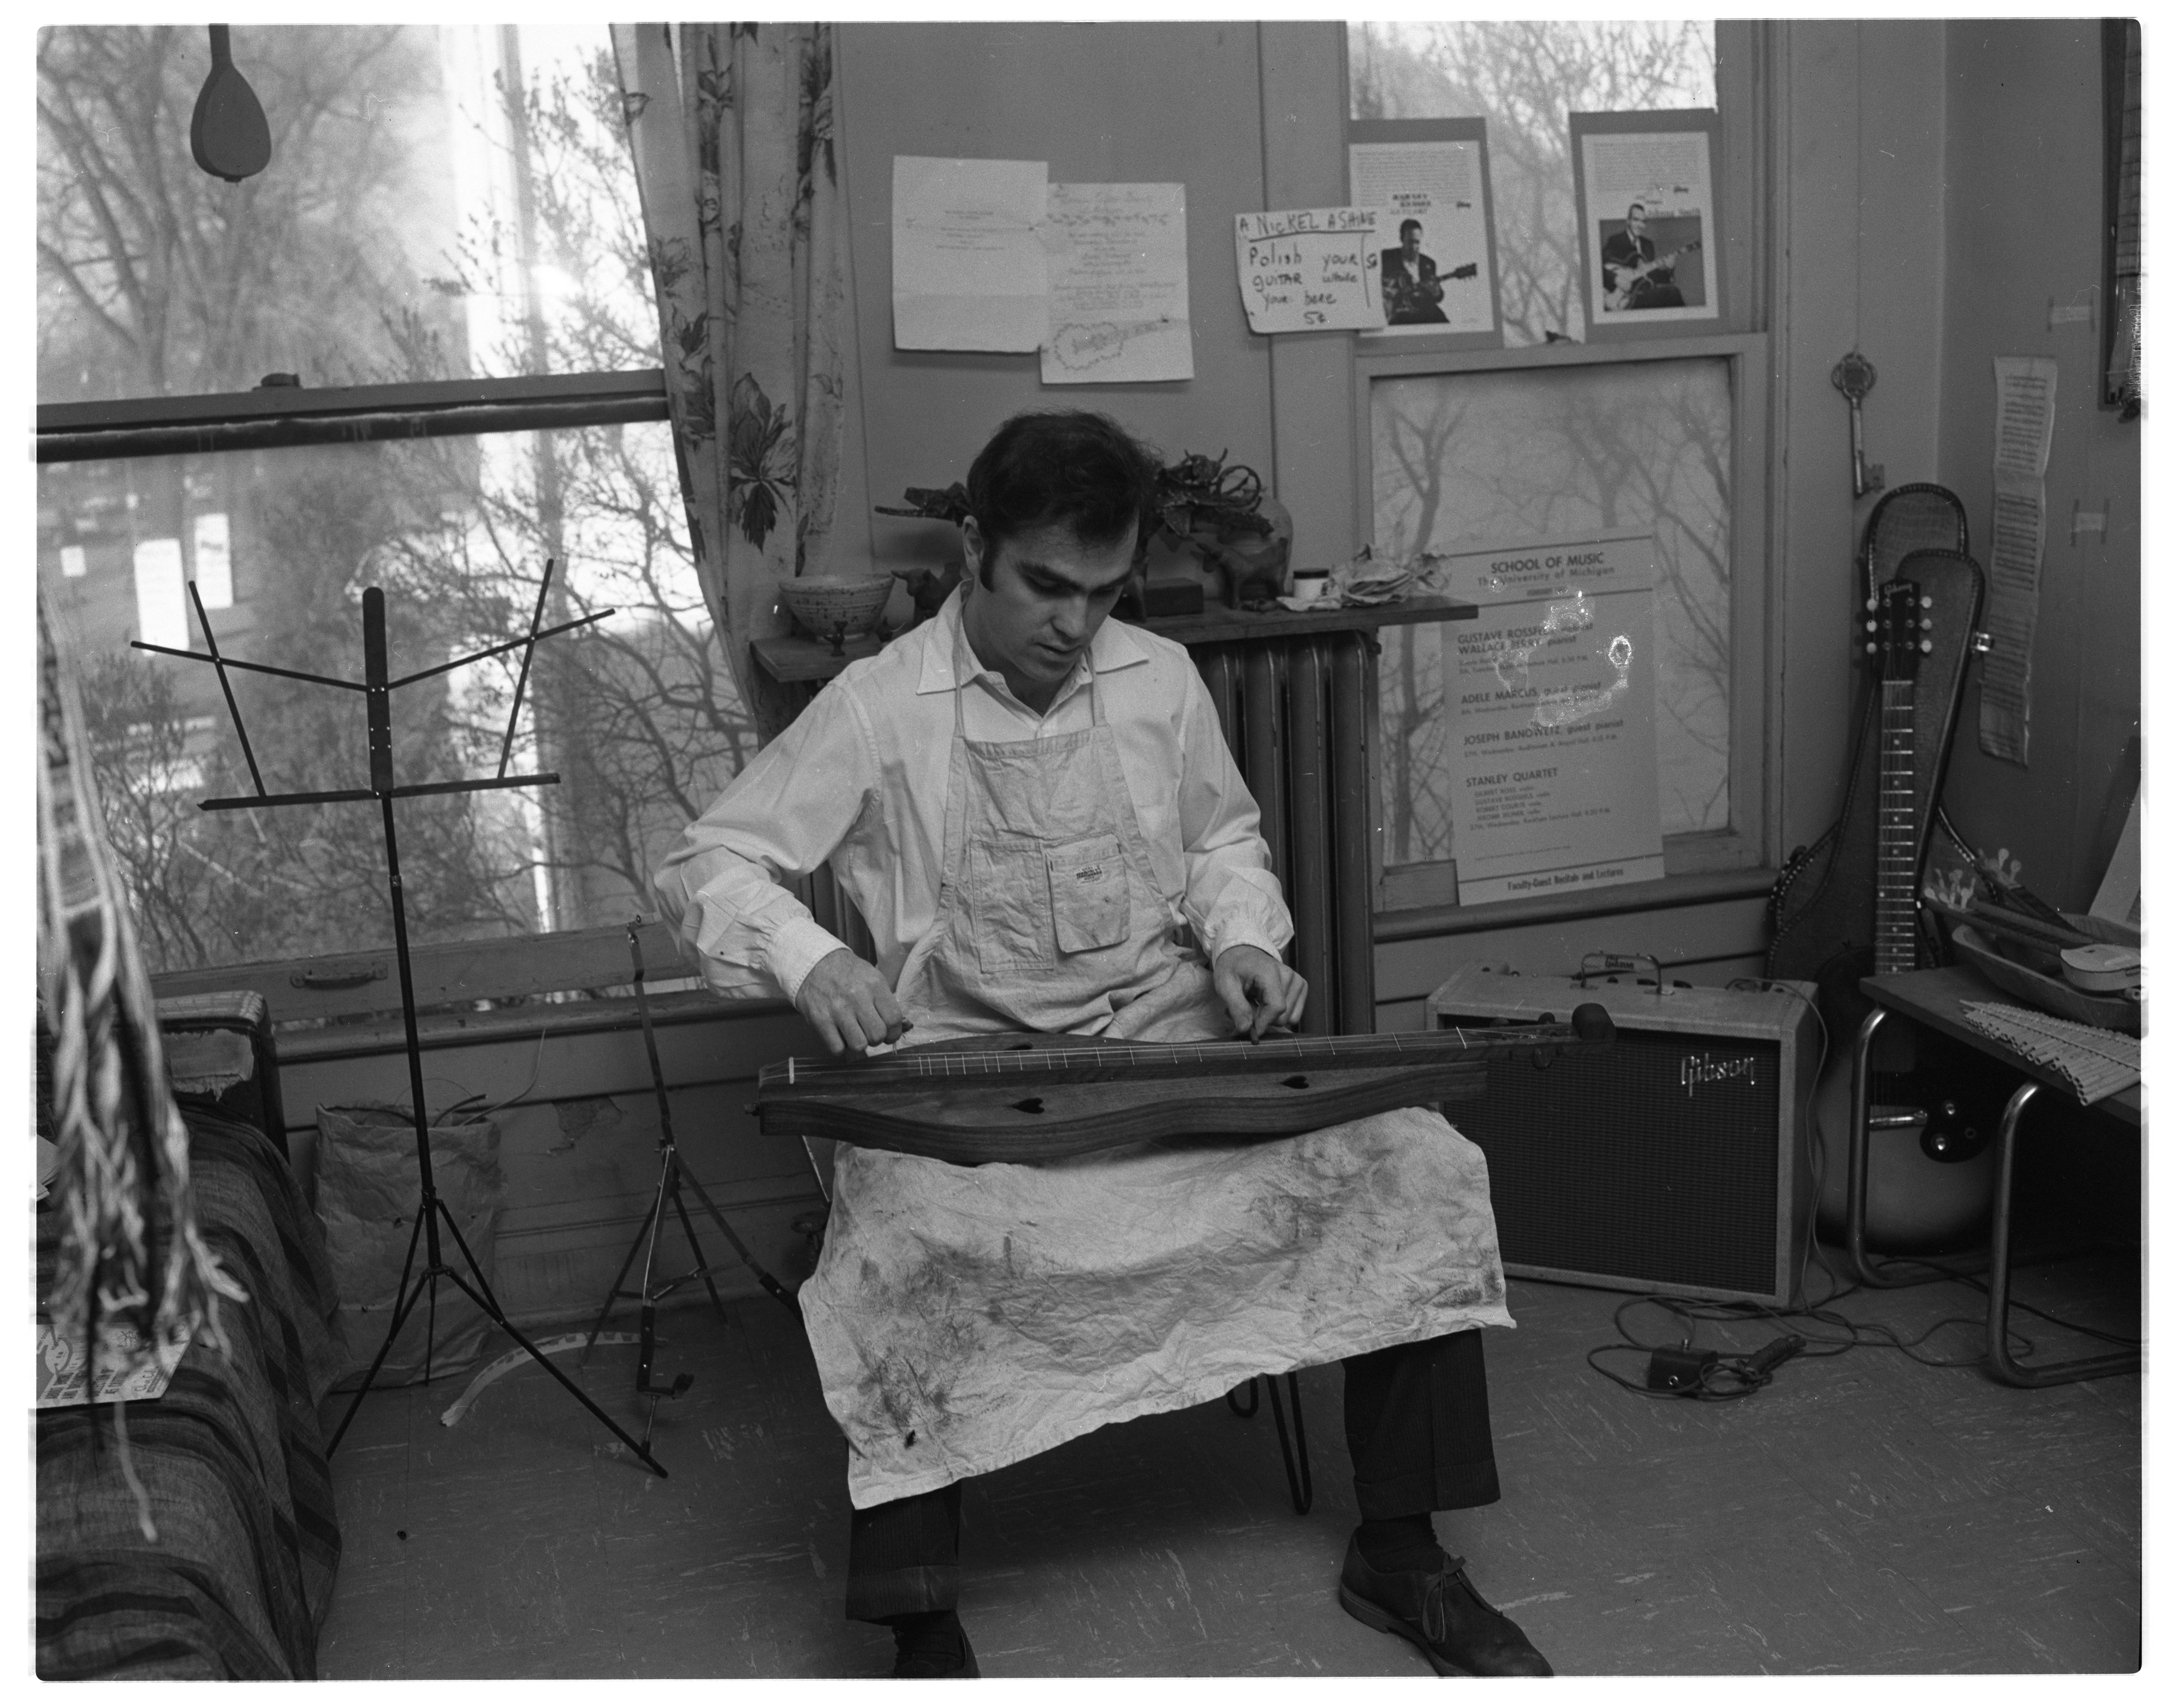 Herb David Demonstrates How to Play An Appalachian Dulcimer, March 1963 image